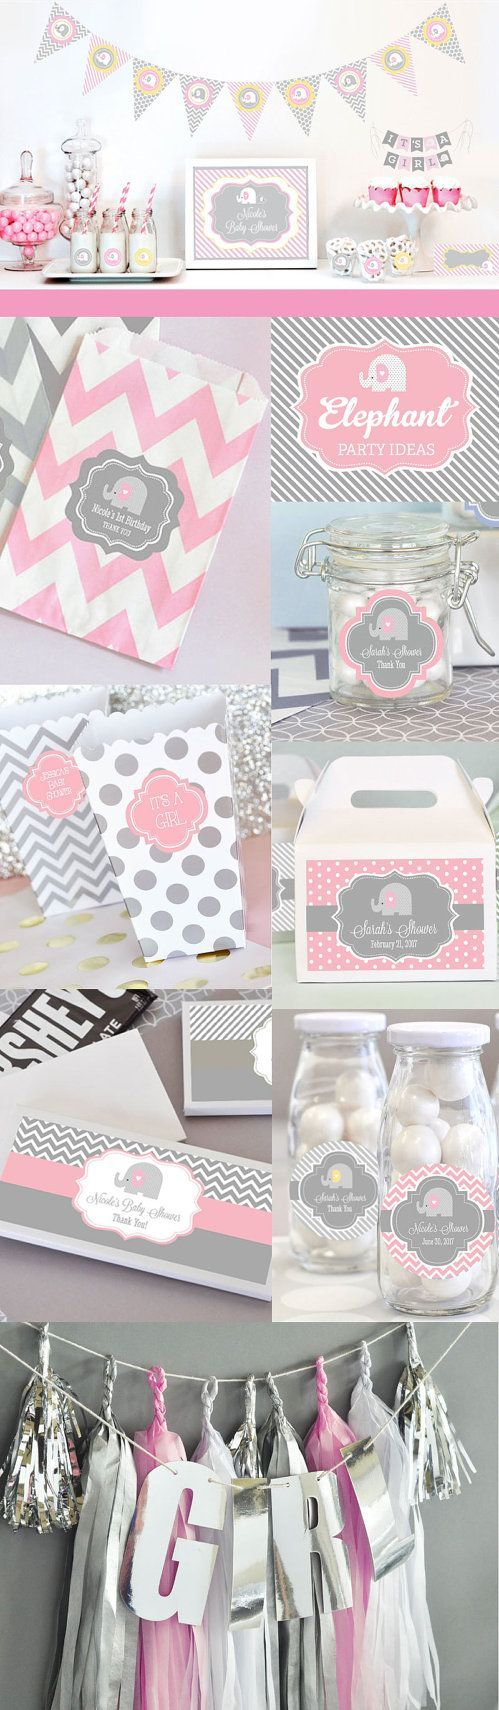 Pink Elephant Baby Shower Decorations, Ideas, Favors, Banner, Cupcakes, Cake topper & Supplies KIT by ModParty